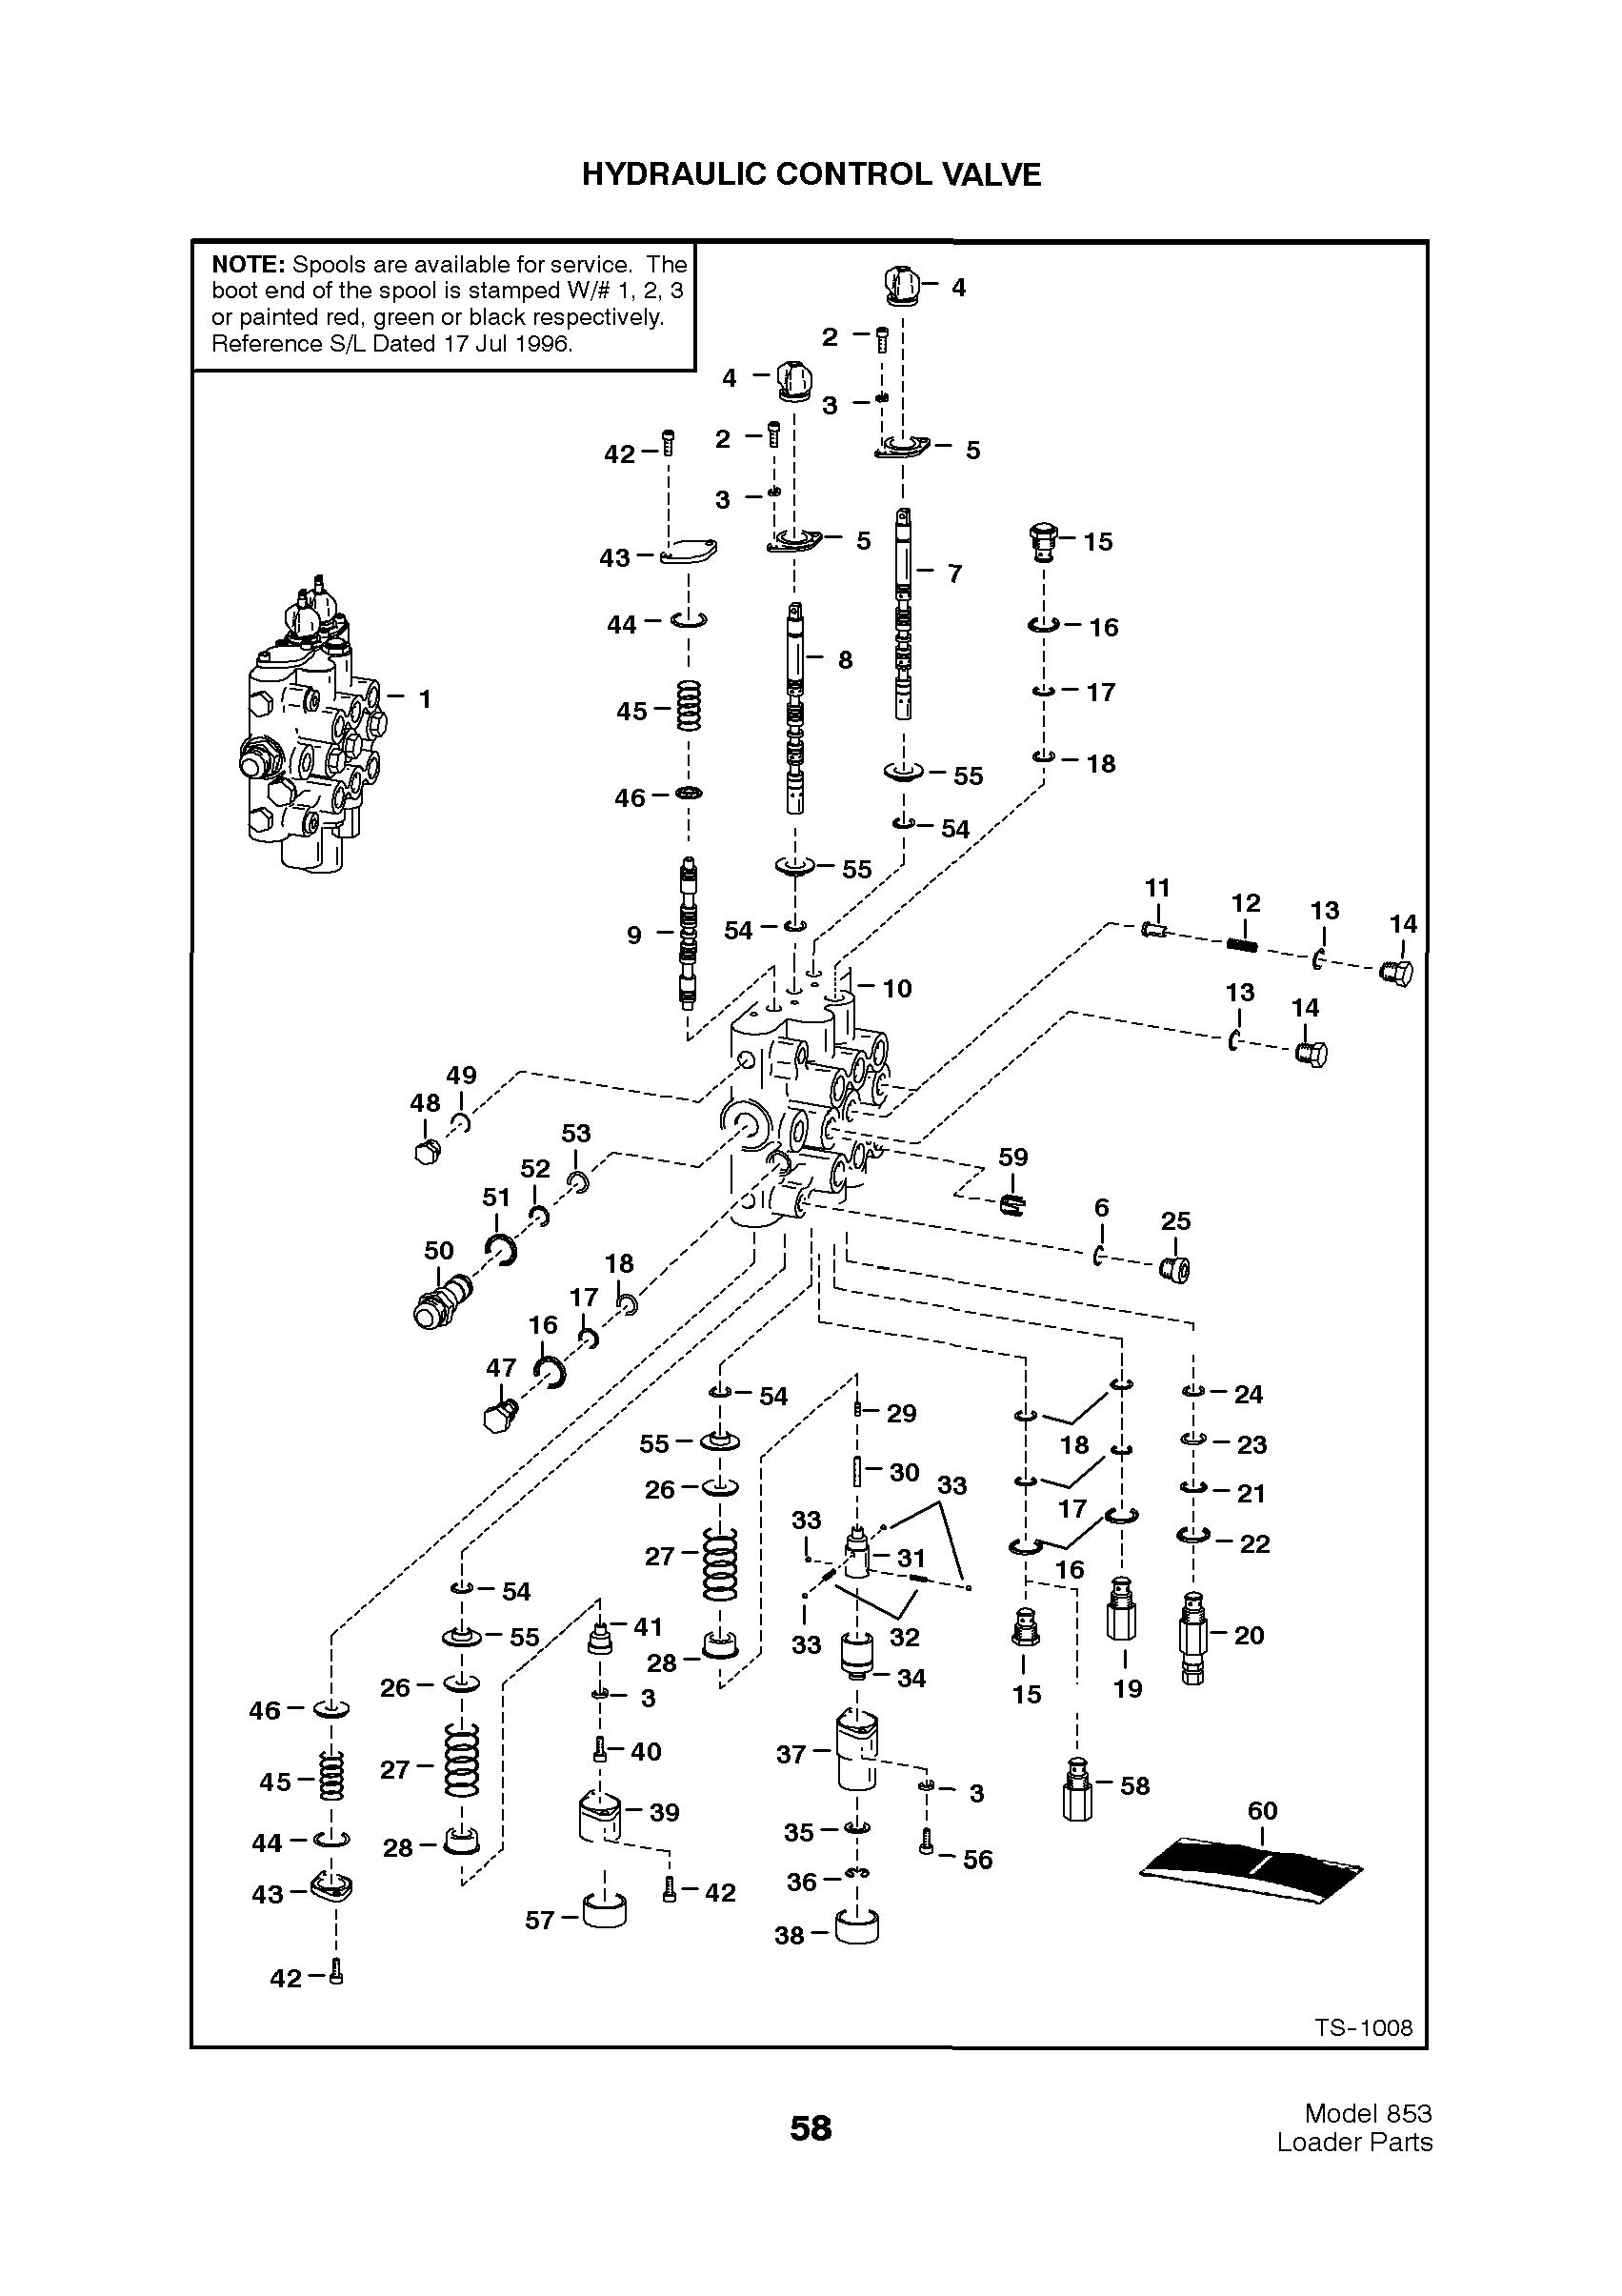 hight resolution of bobcat 753 hydraulic control valve diagram wiring diagram todays rh 18 10 10 1813weddingbarn com bobcat skid steer controls diagram bobcat 435 controls